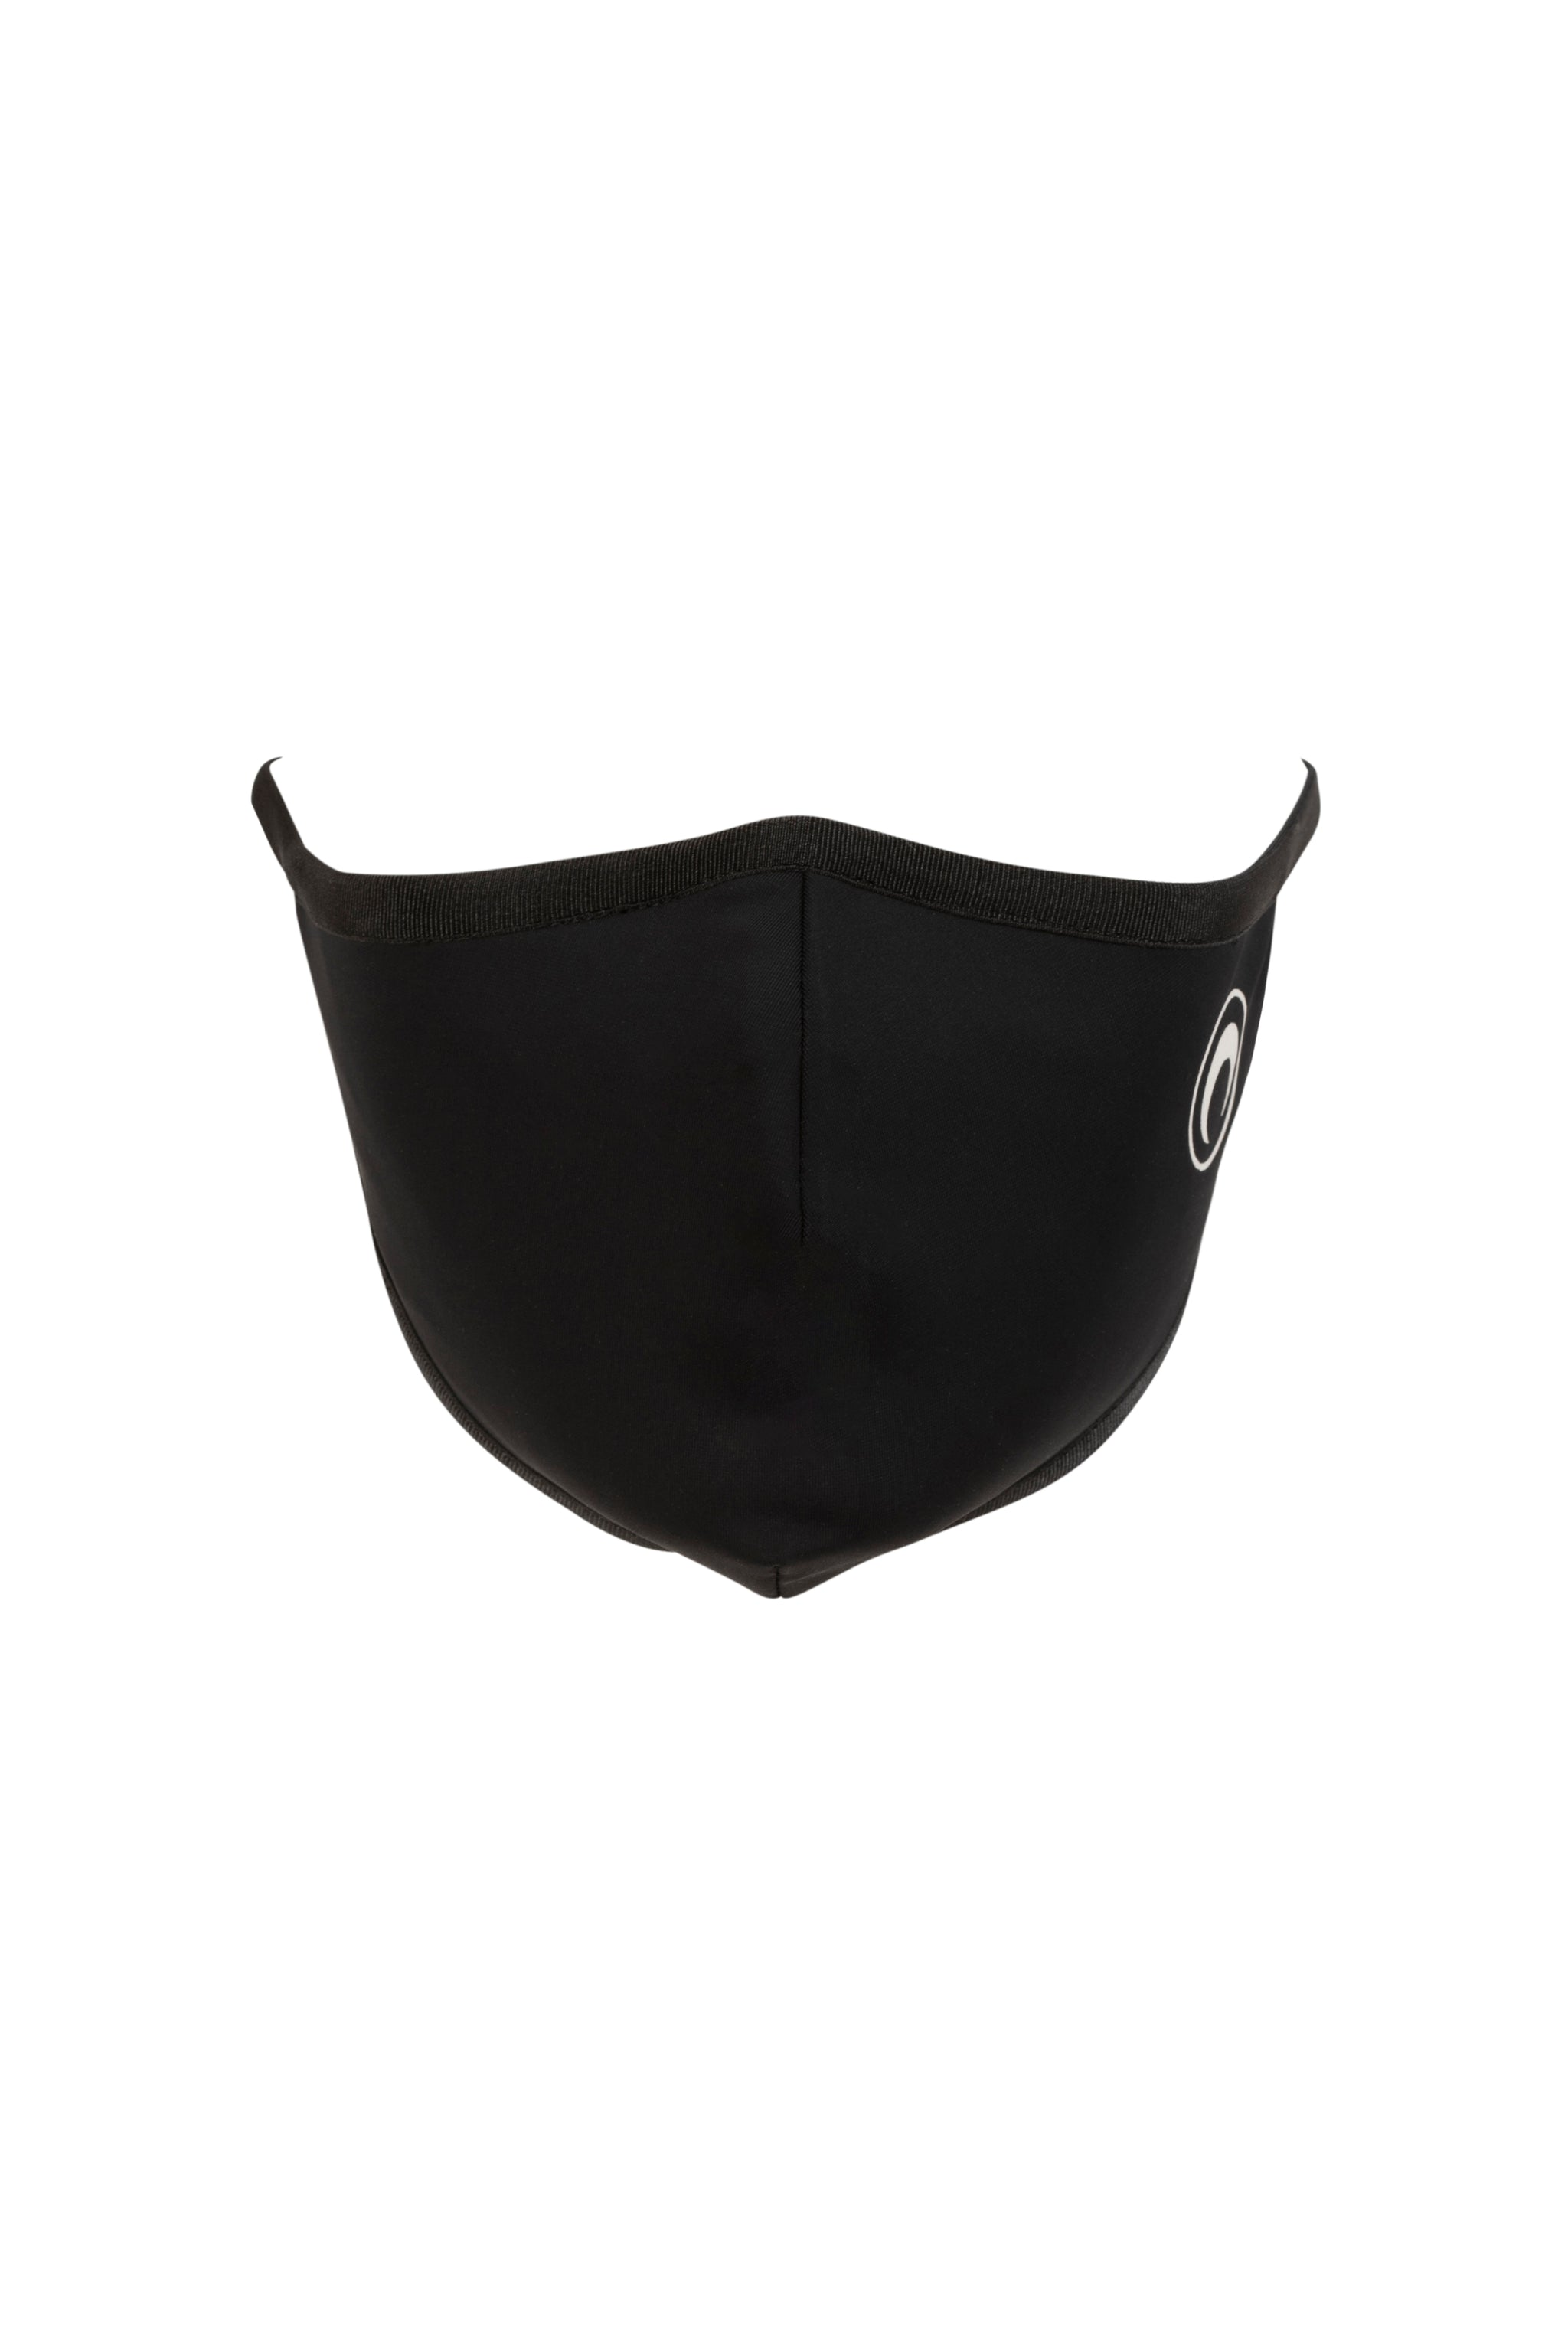 Daily Wear Mask Black